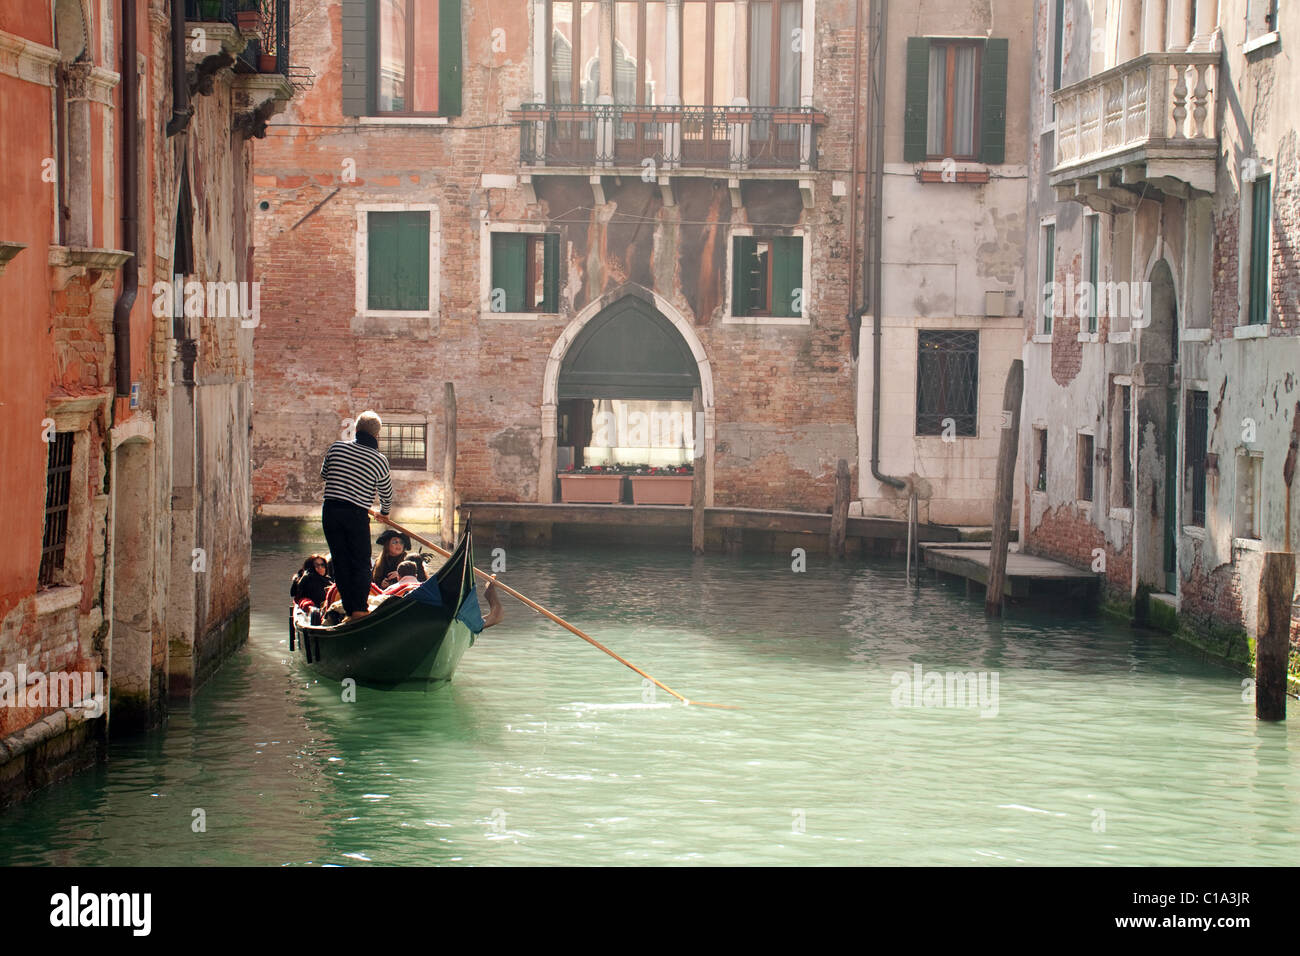 A gondolier guides his gondola along the narrow canals, Venice, Italy - Stock Image